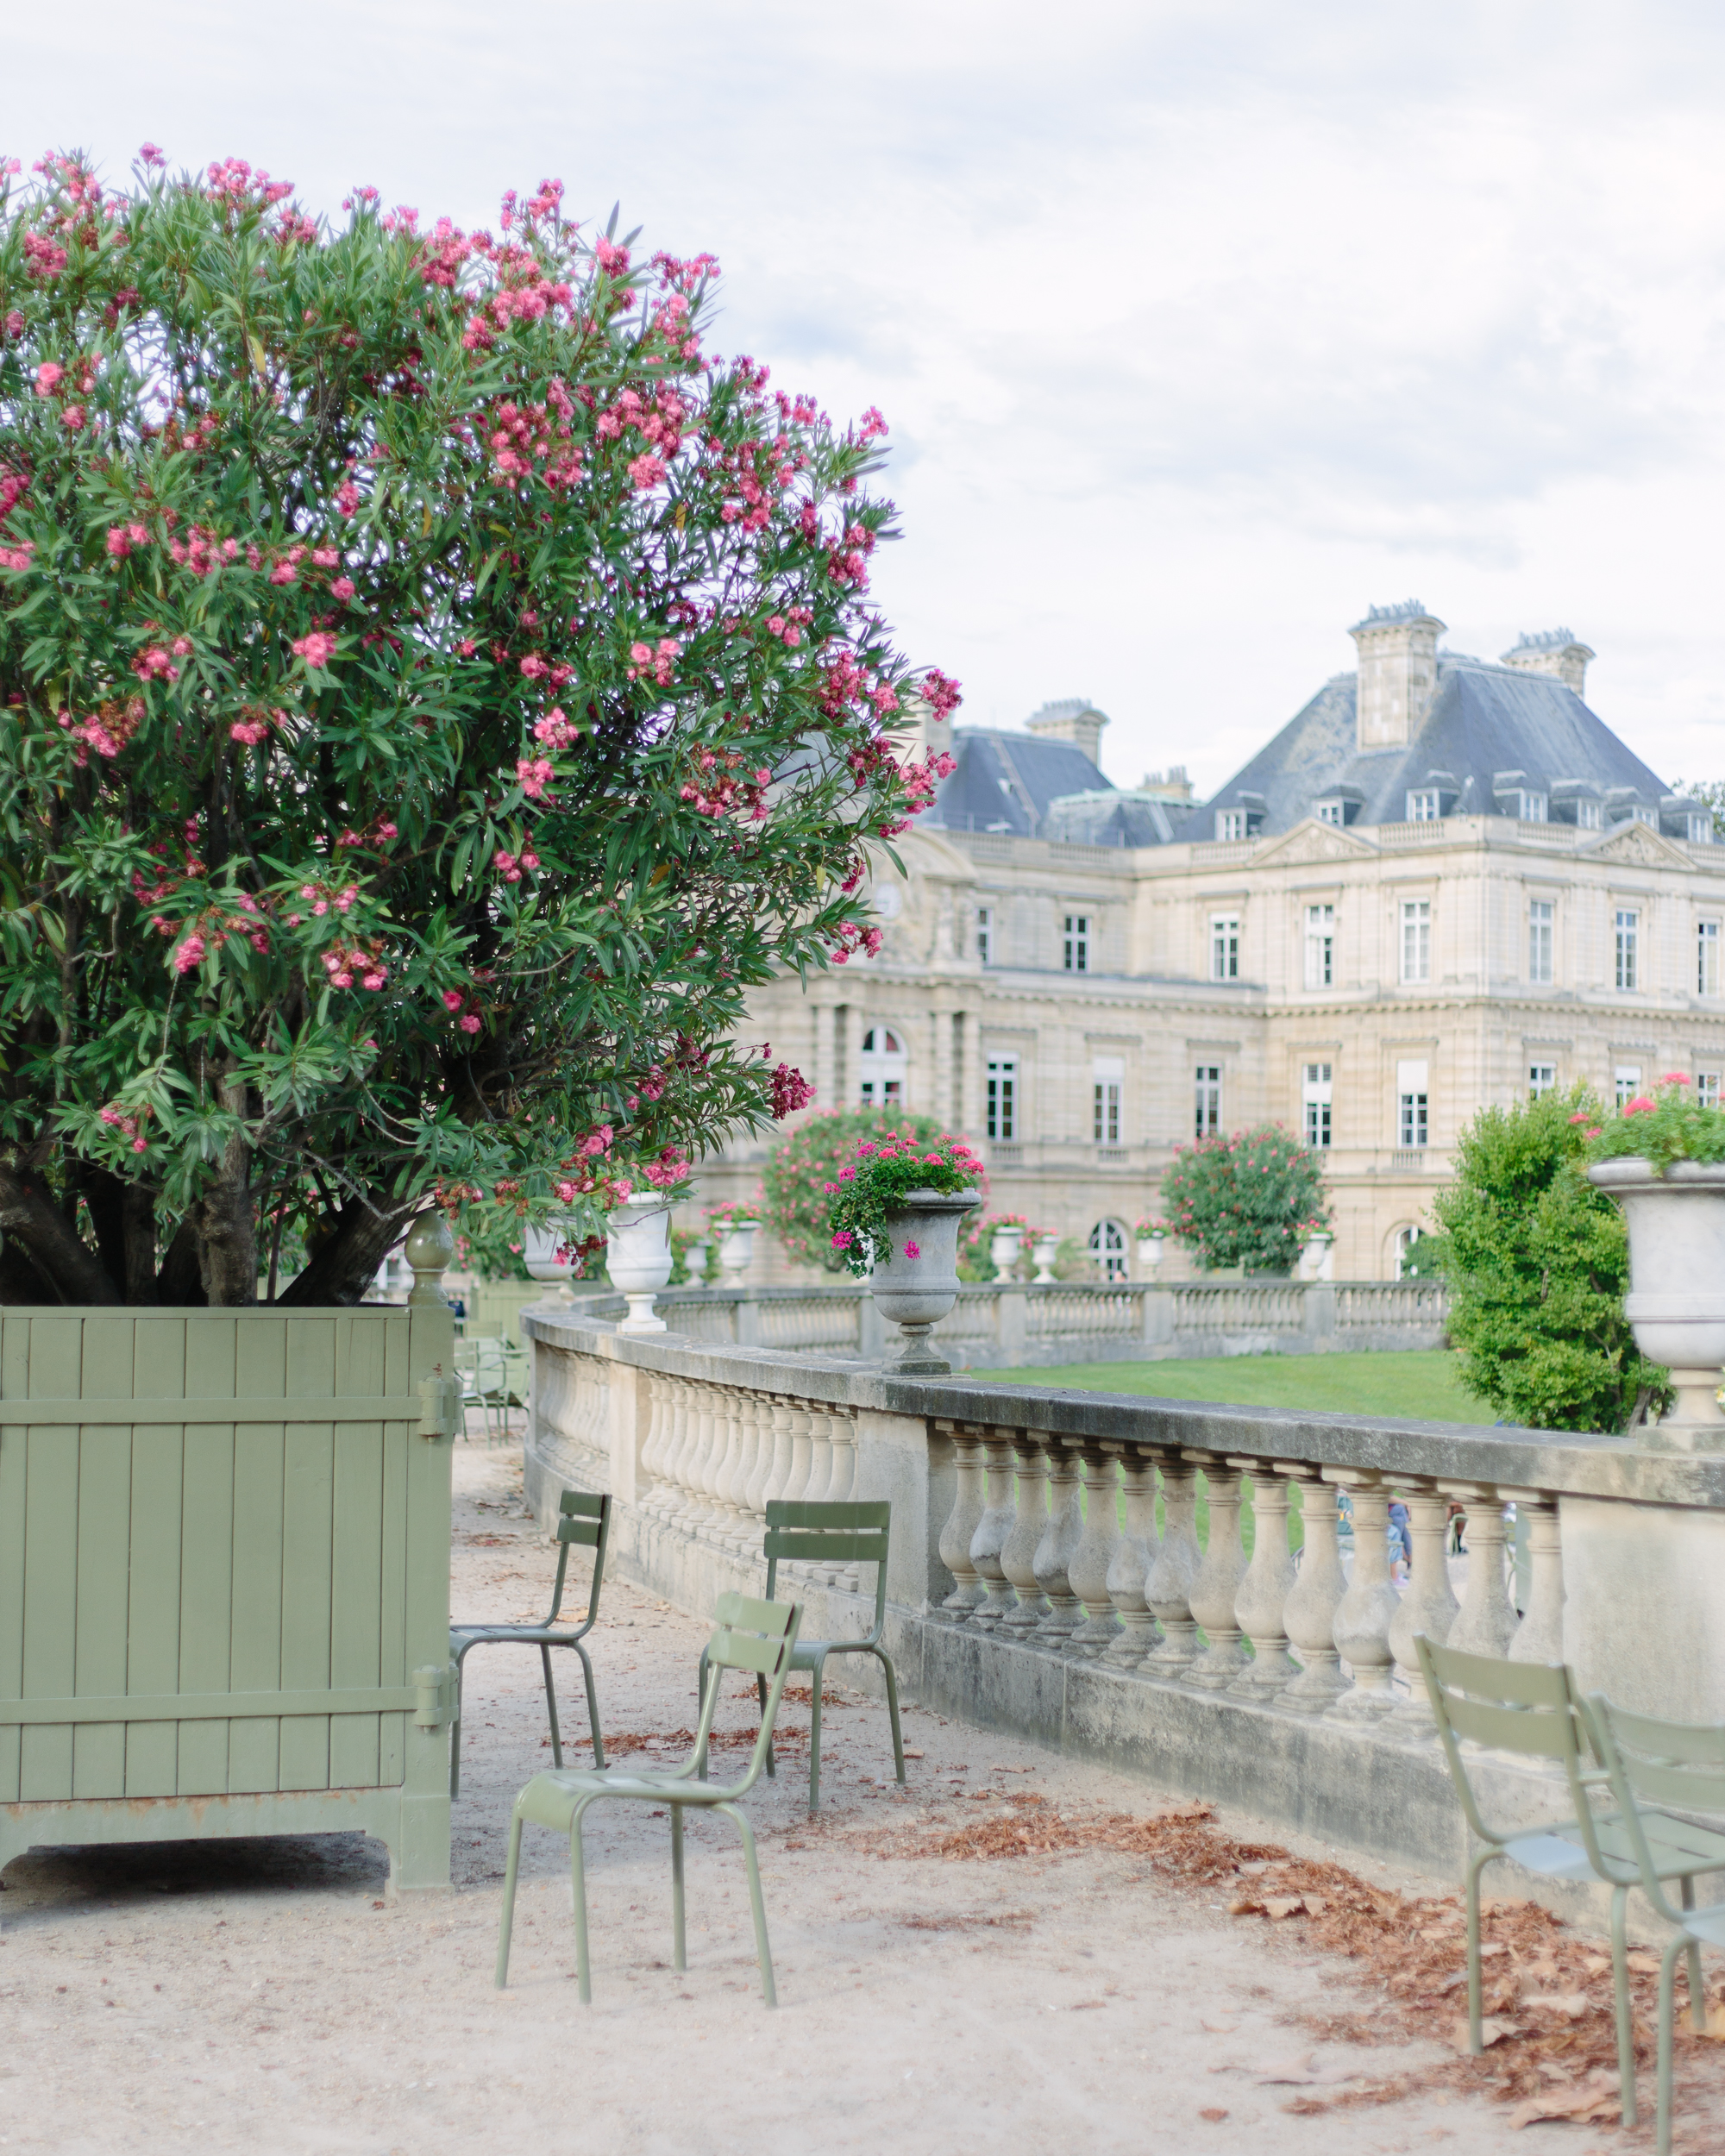 Luxembourg Gardens in August with pink flowers blooming